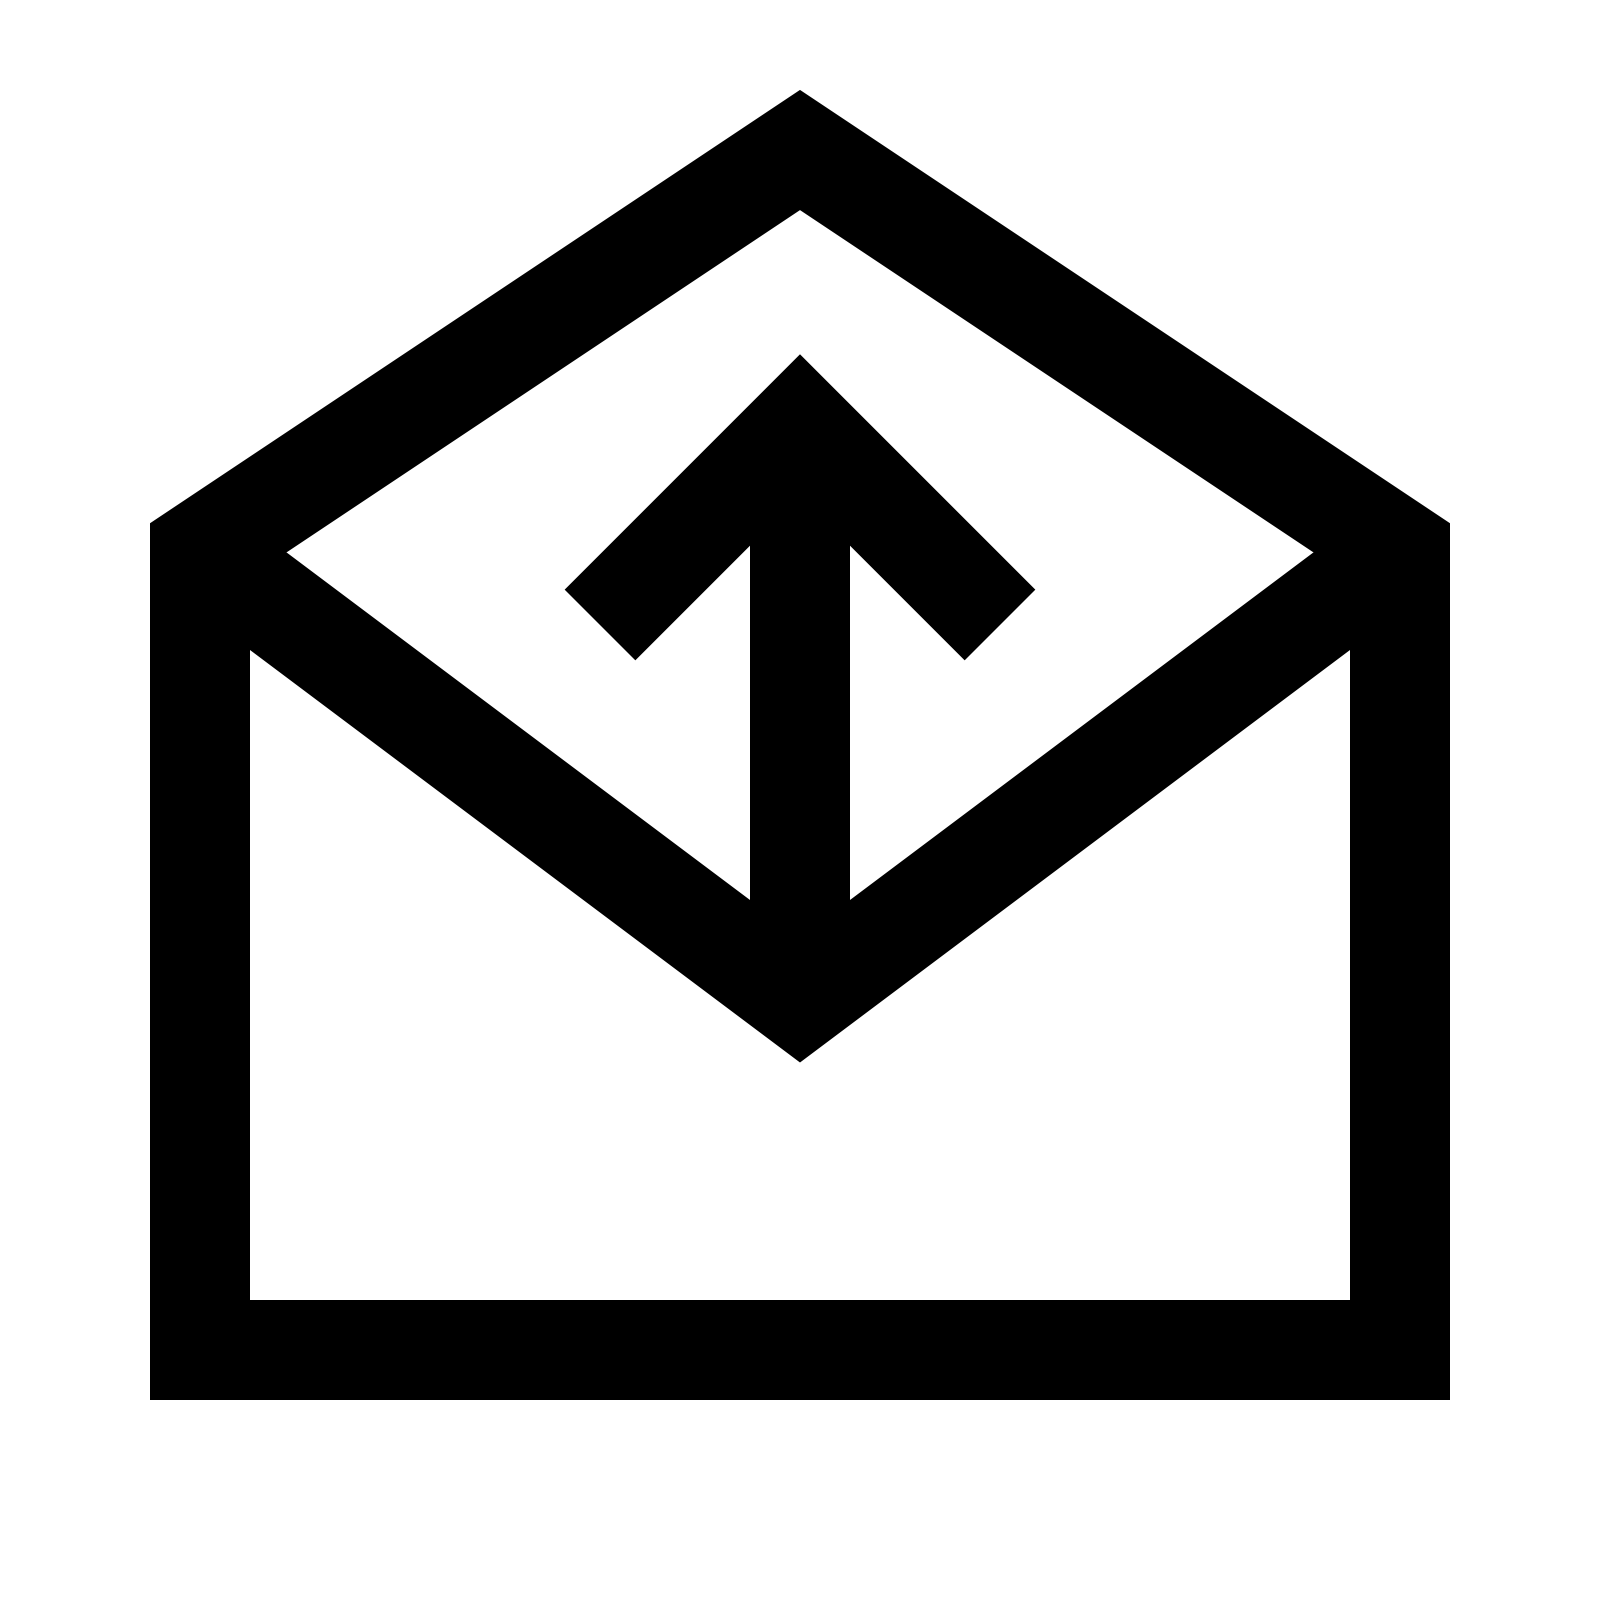 Feedback Icon Png - ClipArt Best